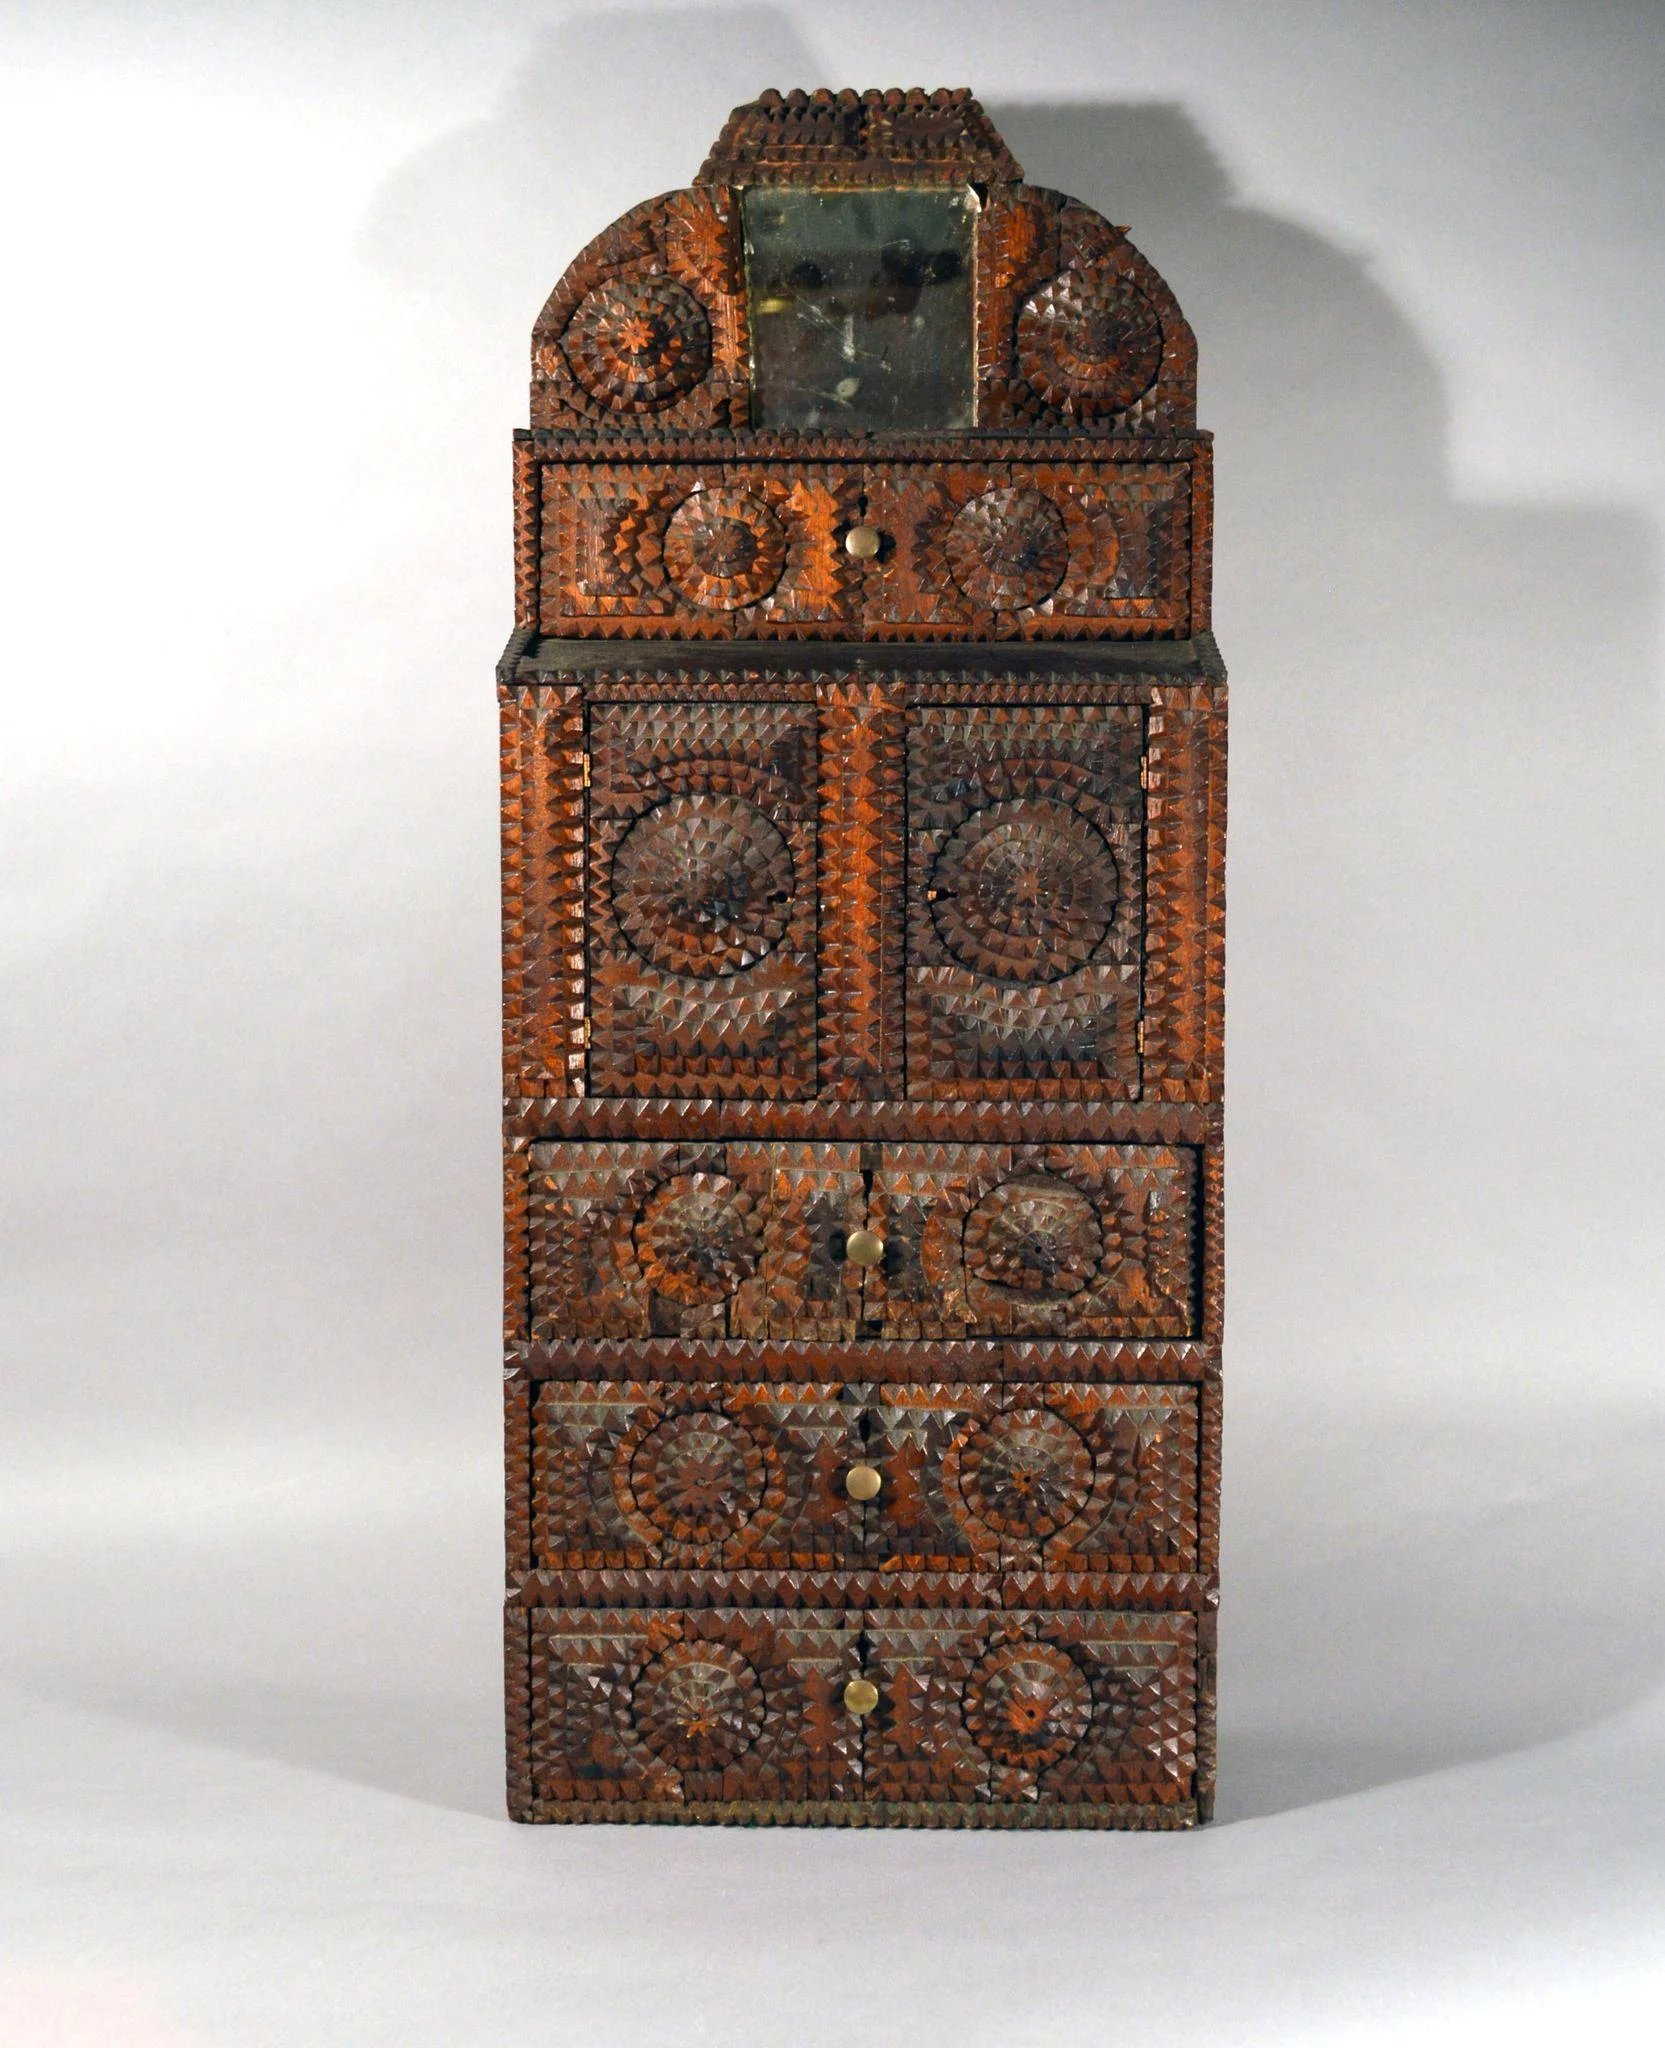 Folk Art American Tramp Art Cabinet Earle D Vandekar Of Knightsbridge Inc Rubylux